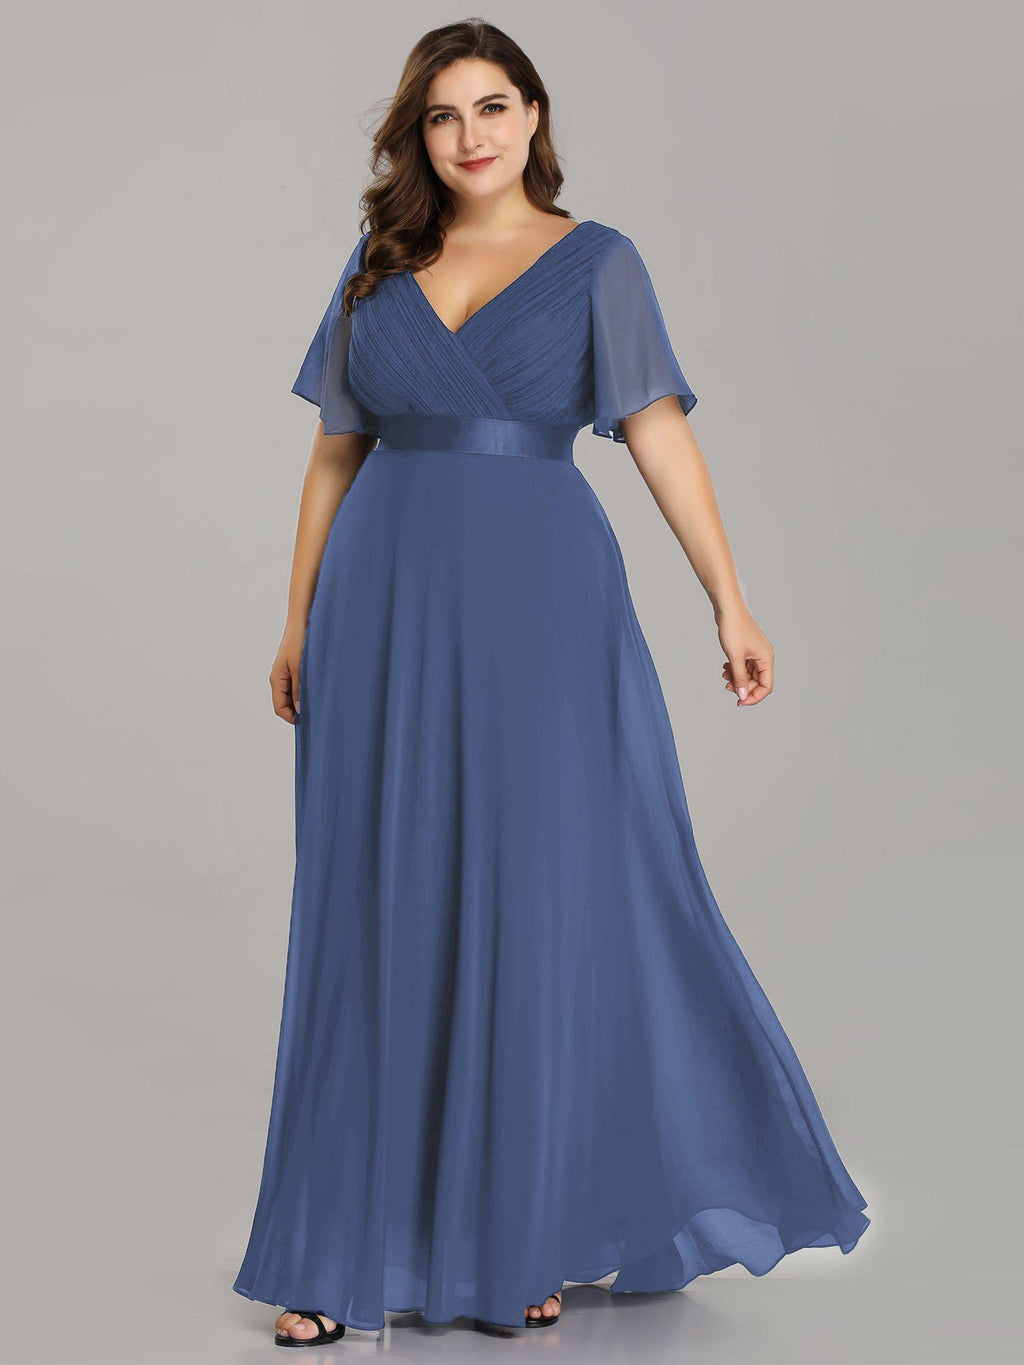 Billie flutter sleeve bridesmaid dress in dusky navy s10 Express NZ wide